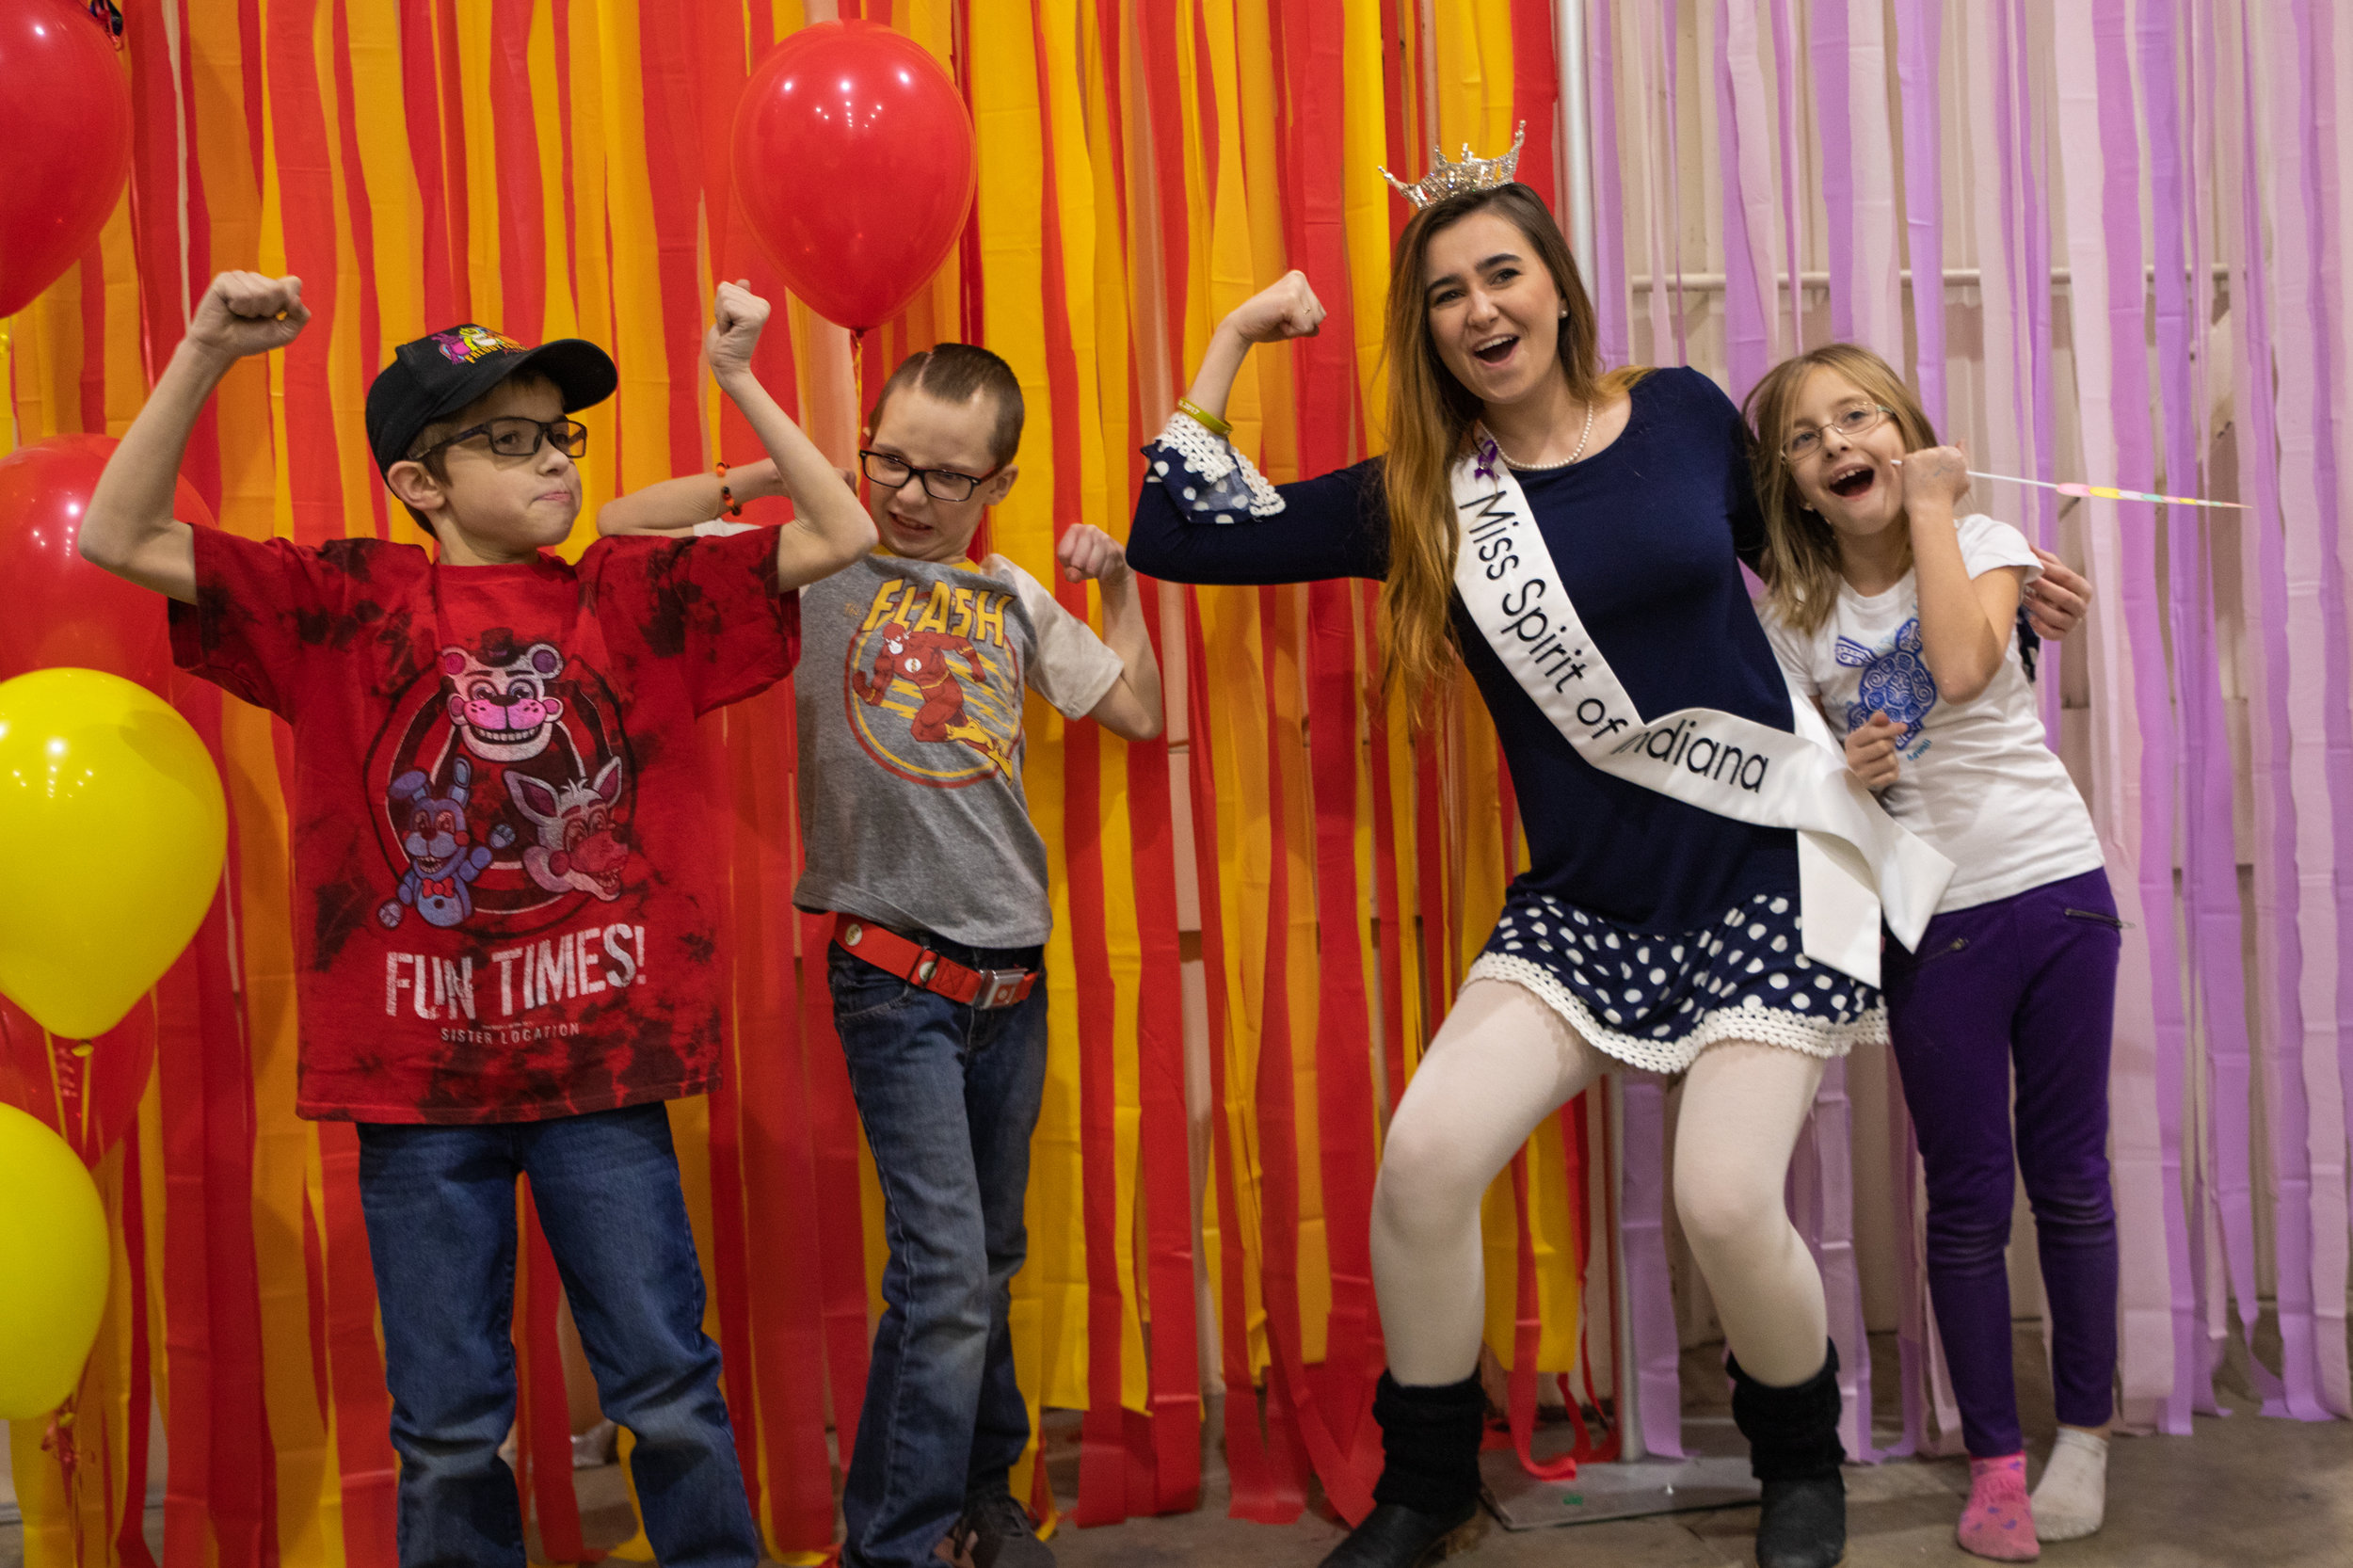 Elijah, Christian, Miss Spirit of Indiana and Grace all show their muscle guns for a photo at the 8th Birthday Bash. Flash and Unicorn decorations covered MadJax during the party Feb. 17, 2019.